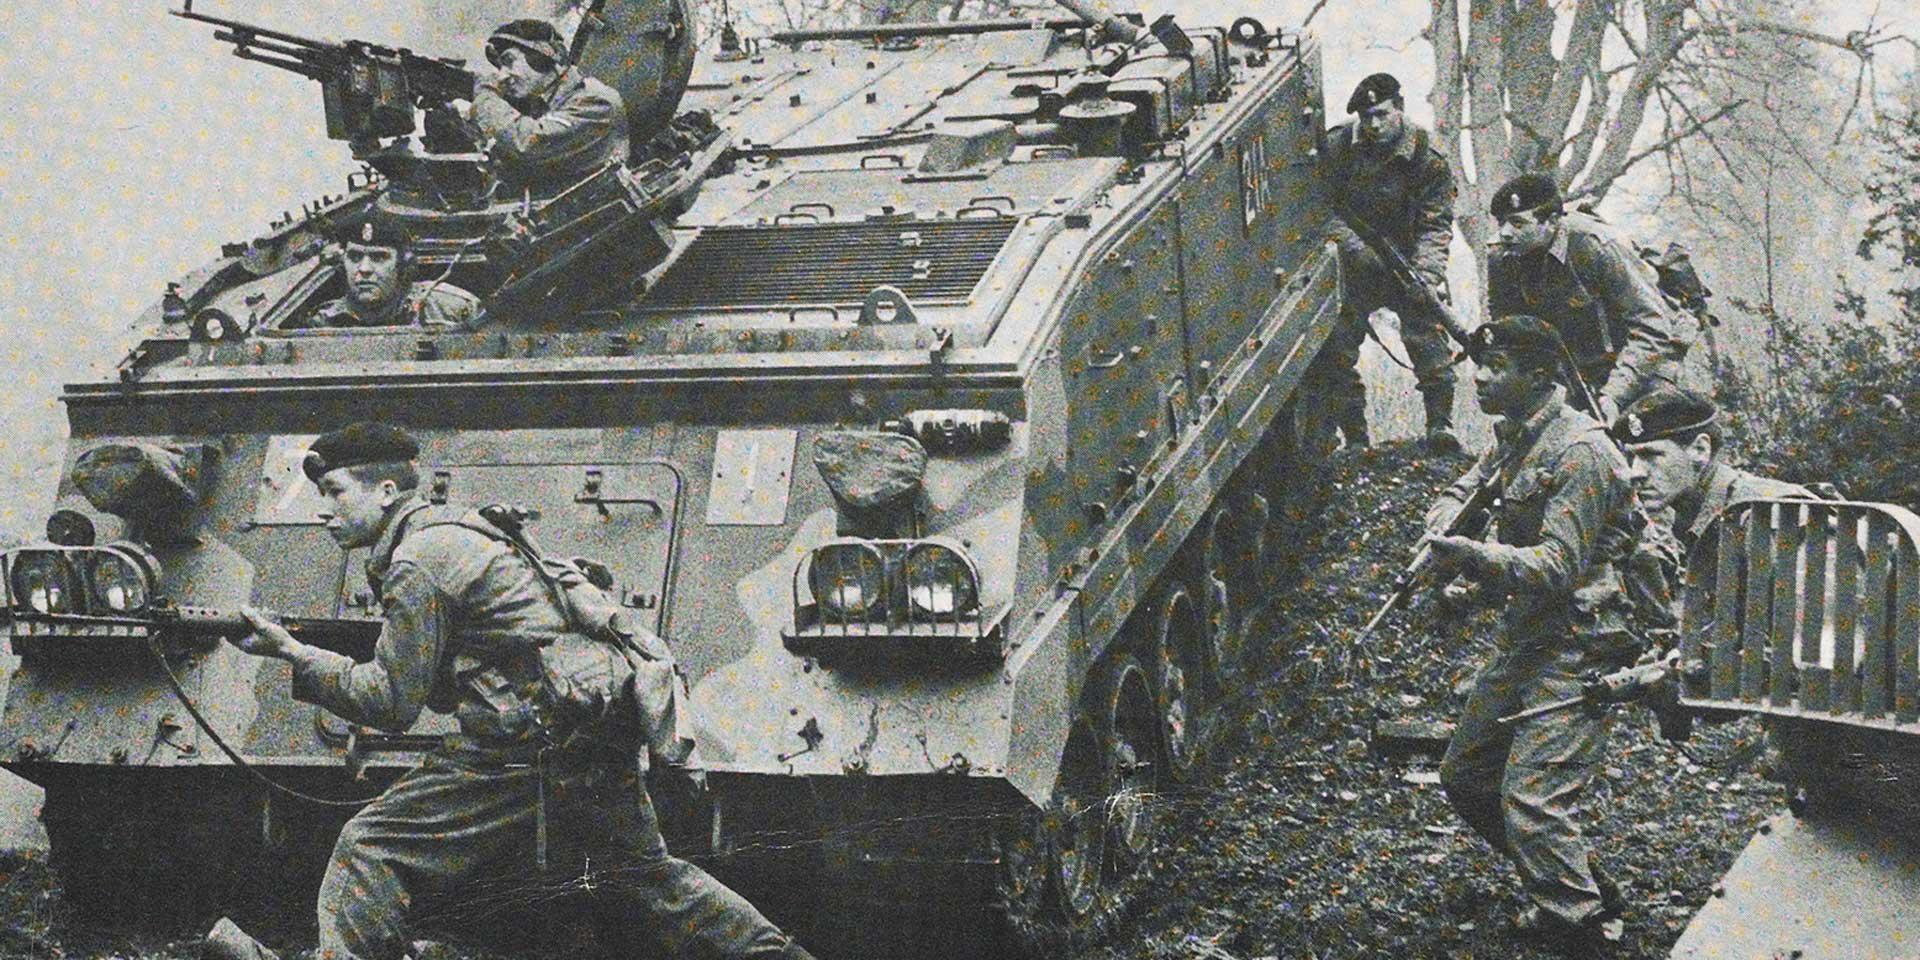 Troops of the Queen's Division of Infantry on exercise, c1970